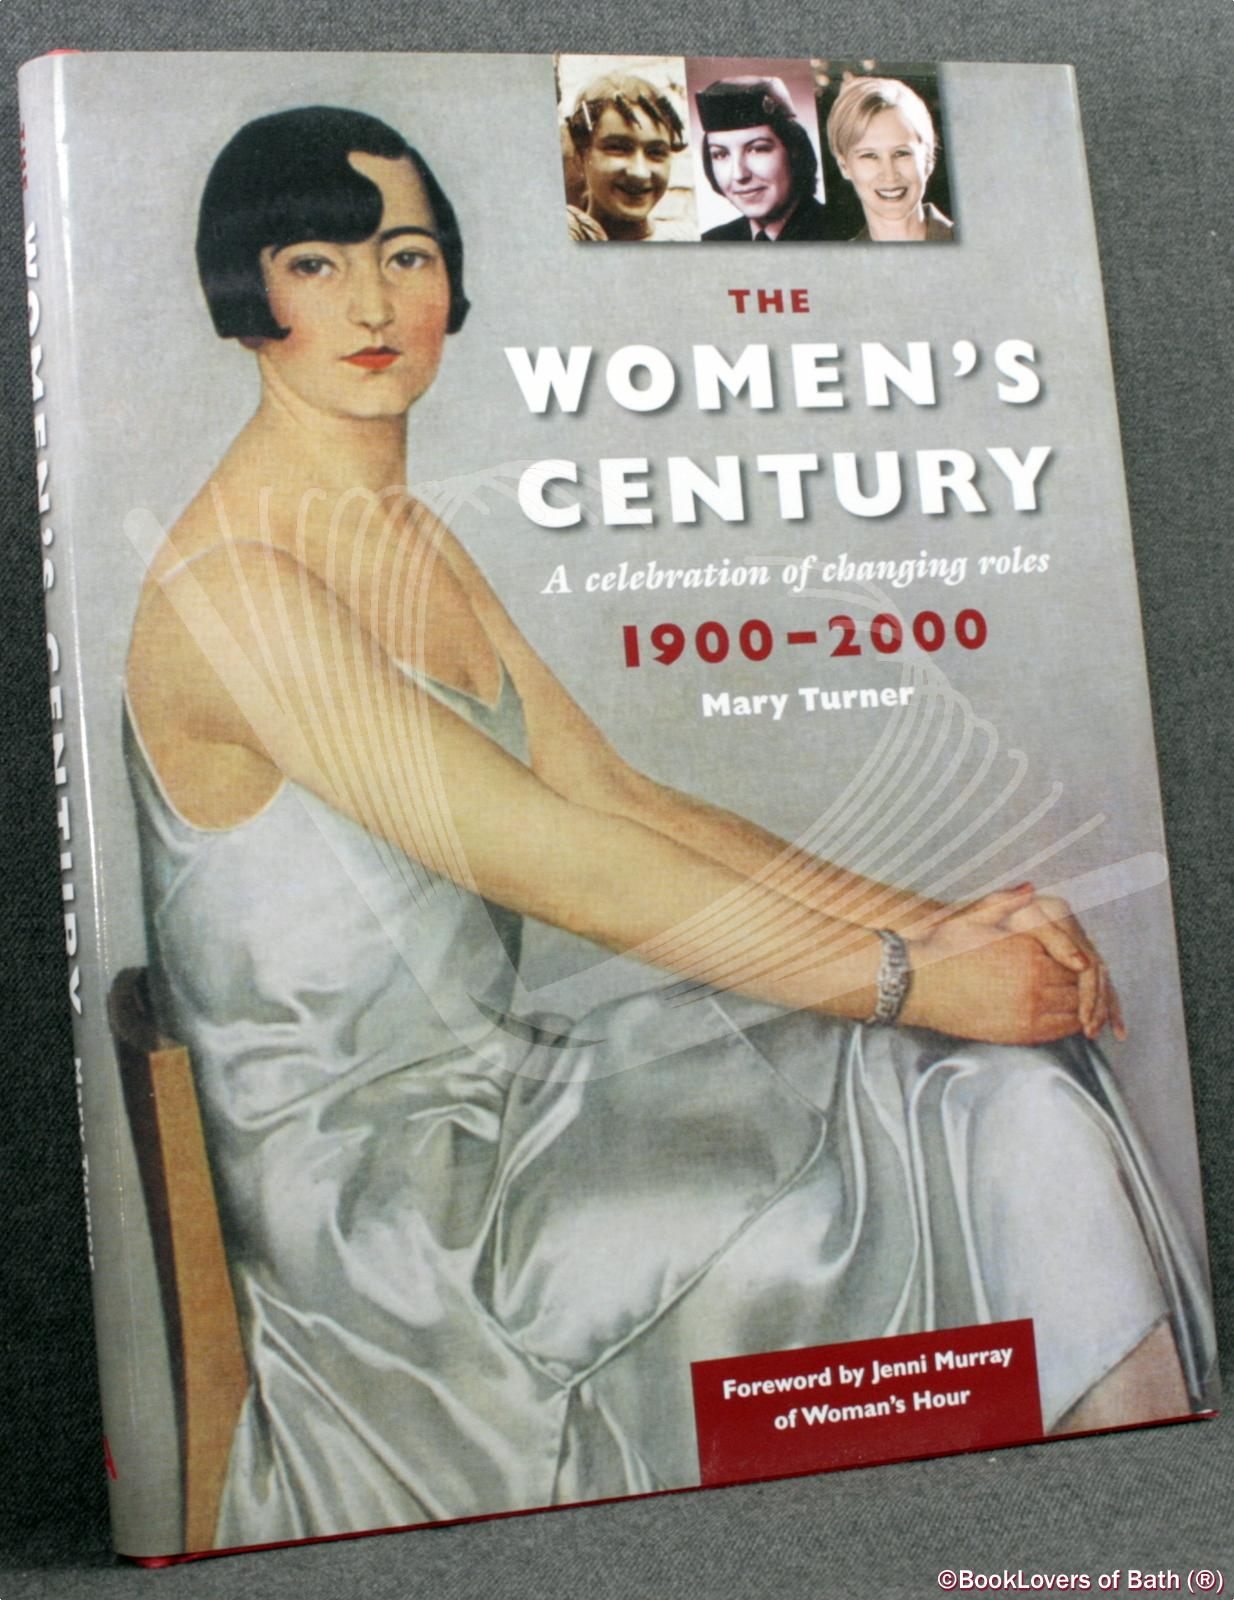 The Women's Century: A Celebration of Changing Roles 1900-2000 - Mary Turner